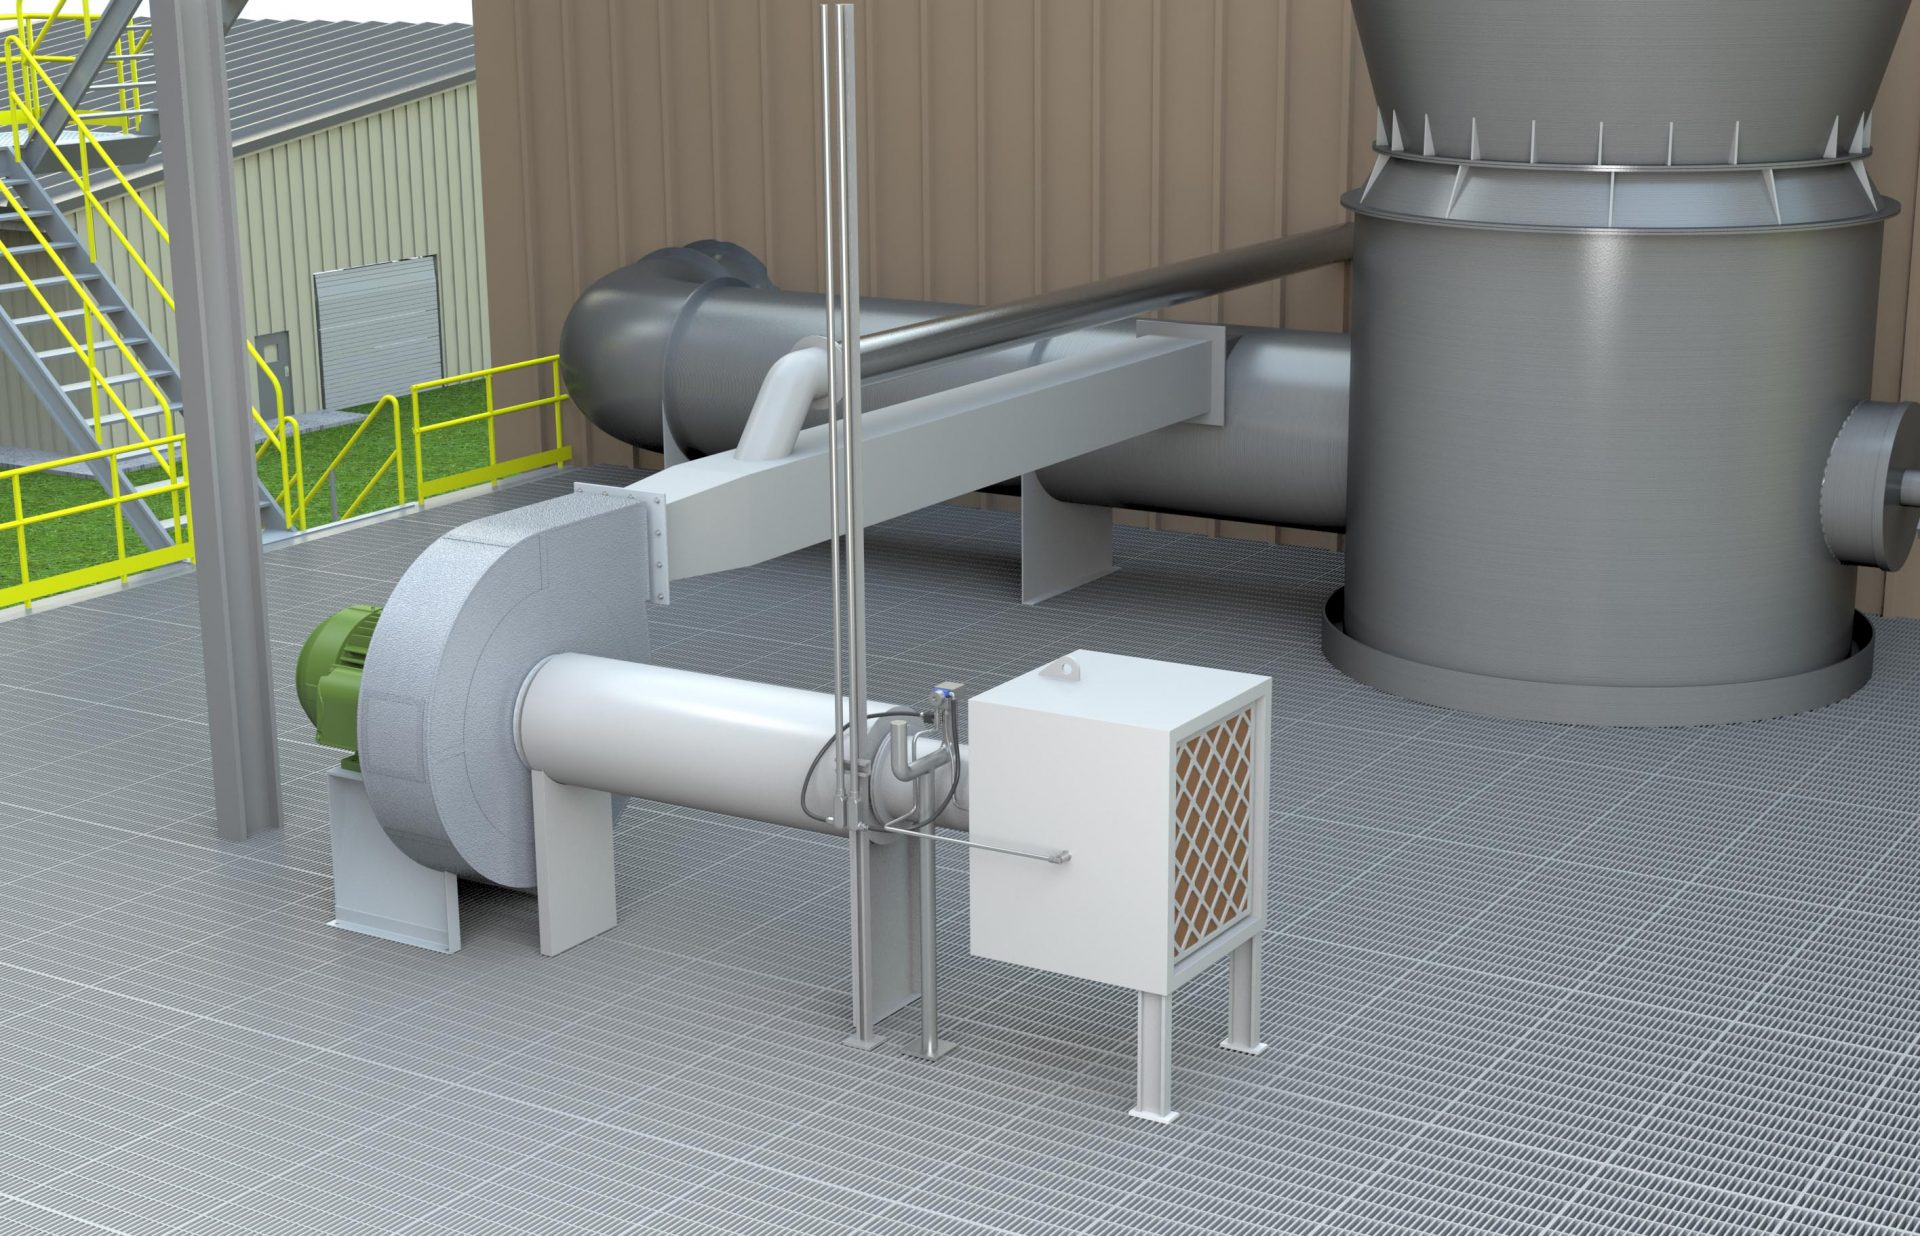 TBR Fluidizing Dryer